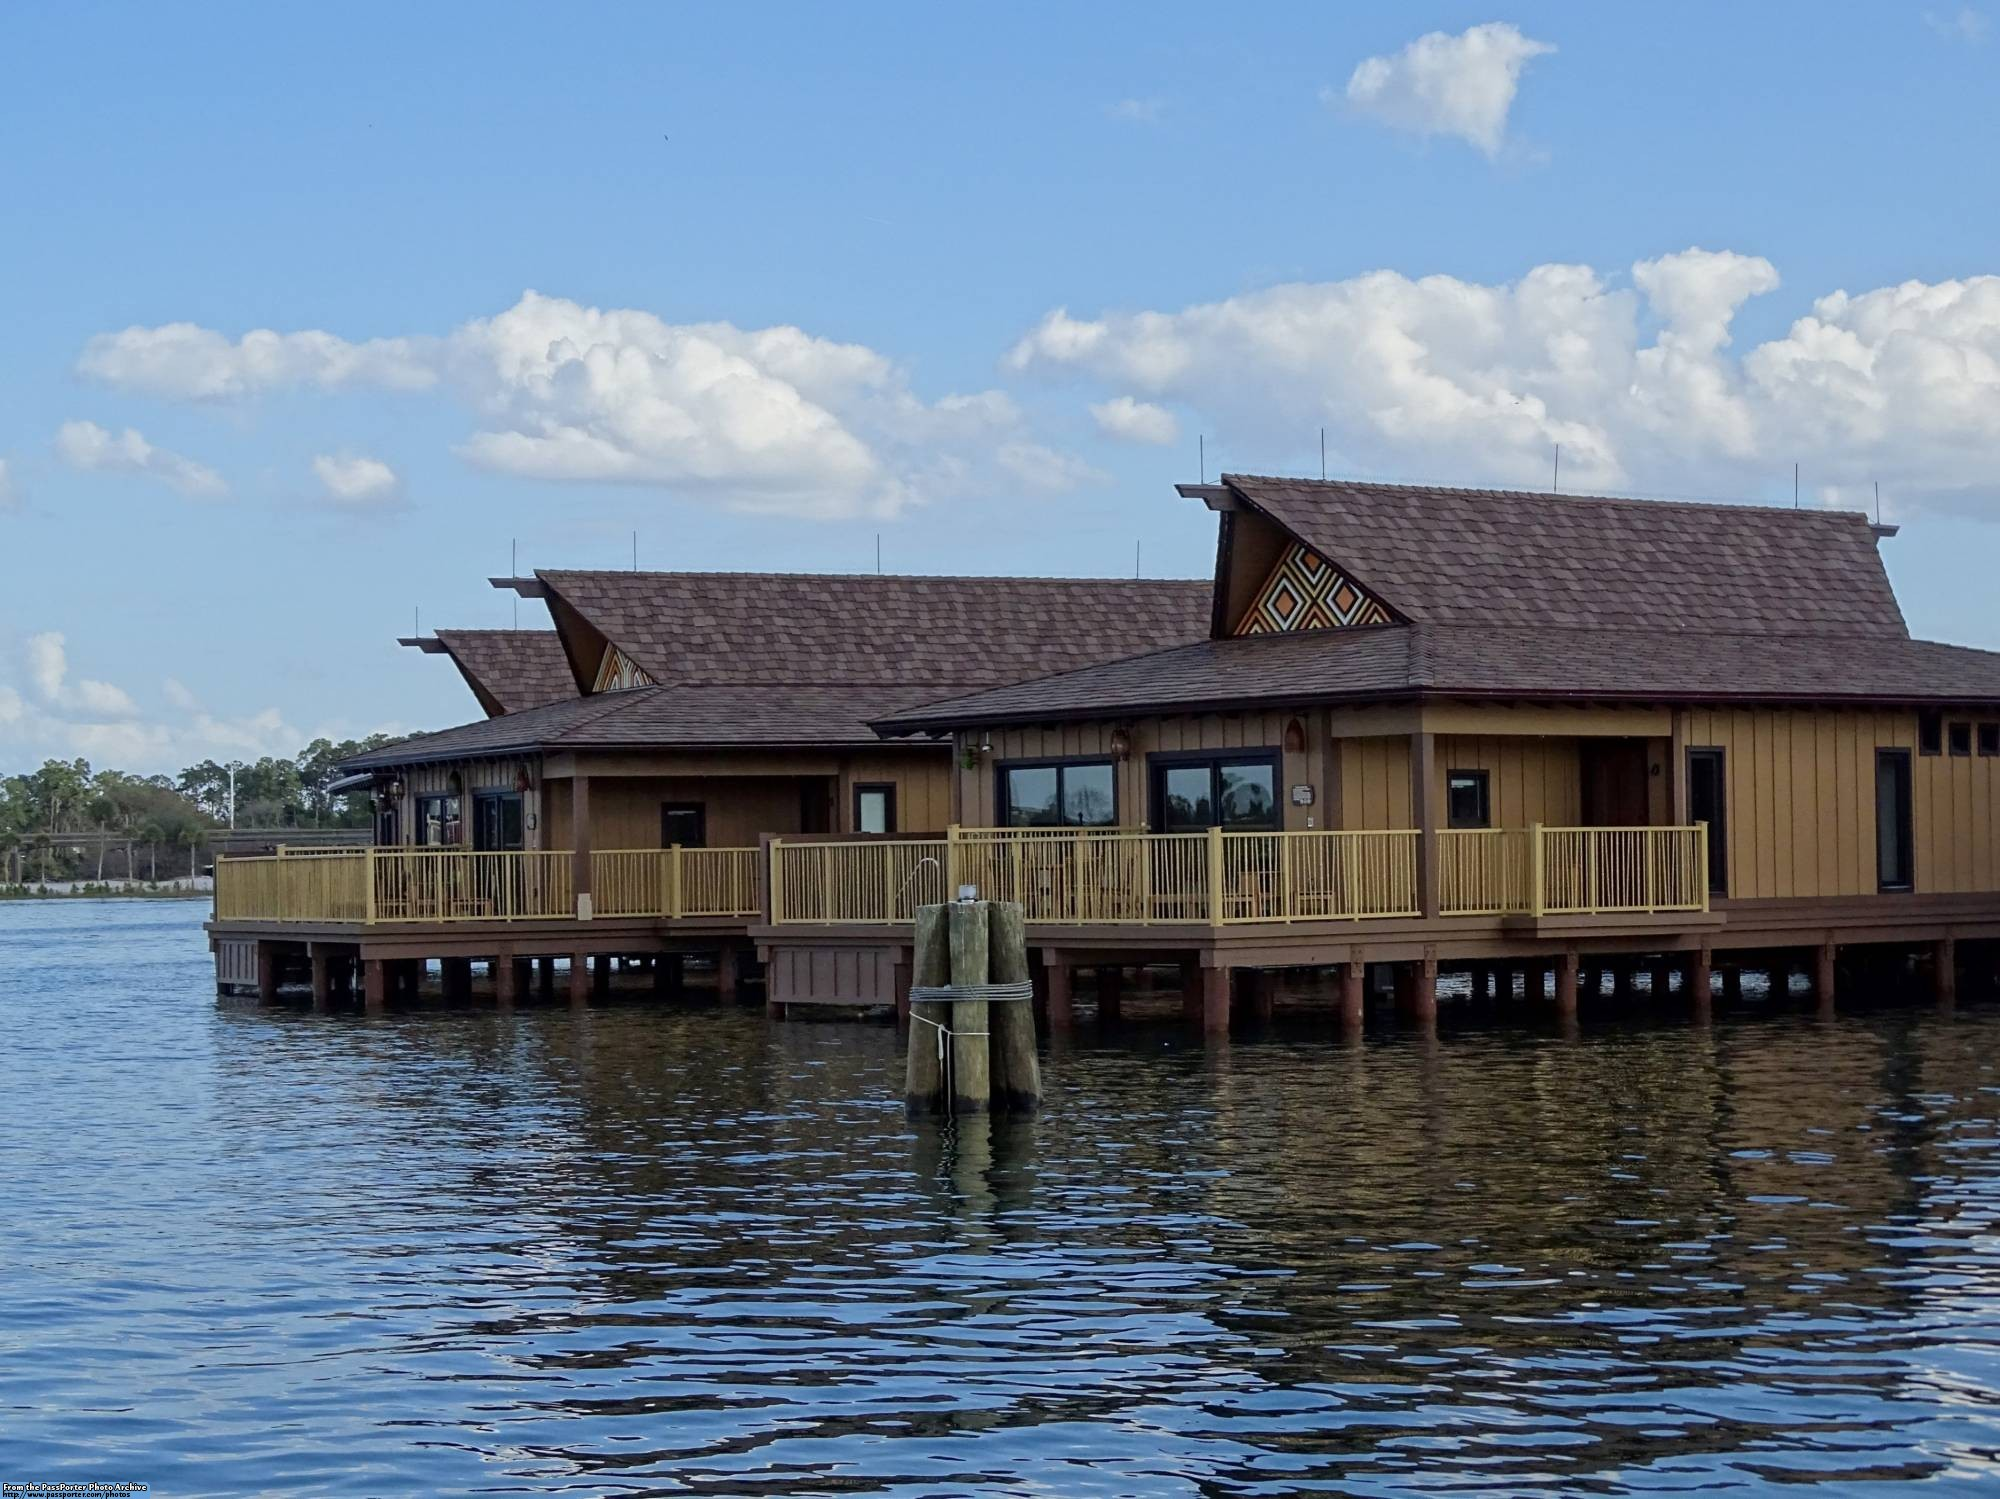 Enjoy the luxury and serenity of a stay in a Waterfront Bungalow at Disney's Polynesian Resort |PassPorter.com